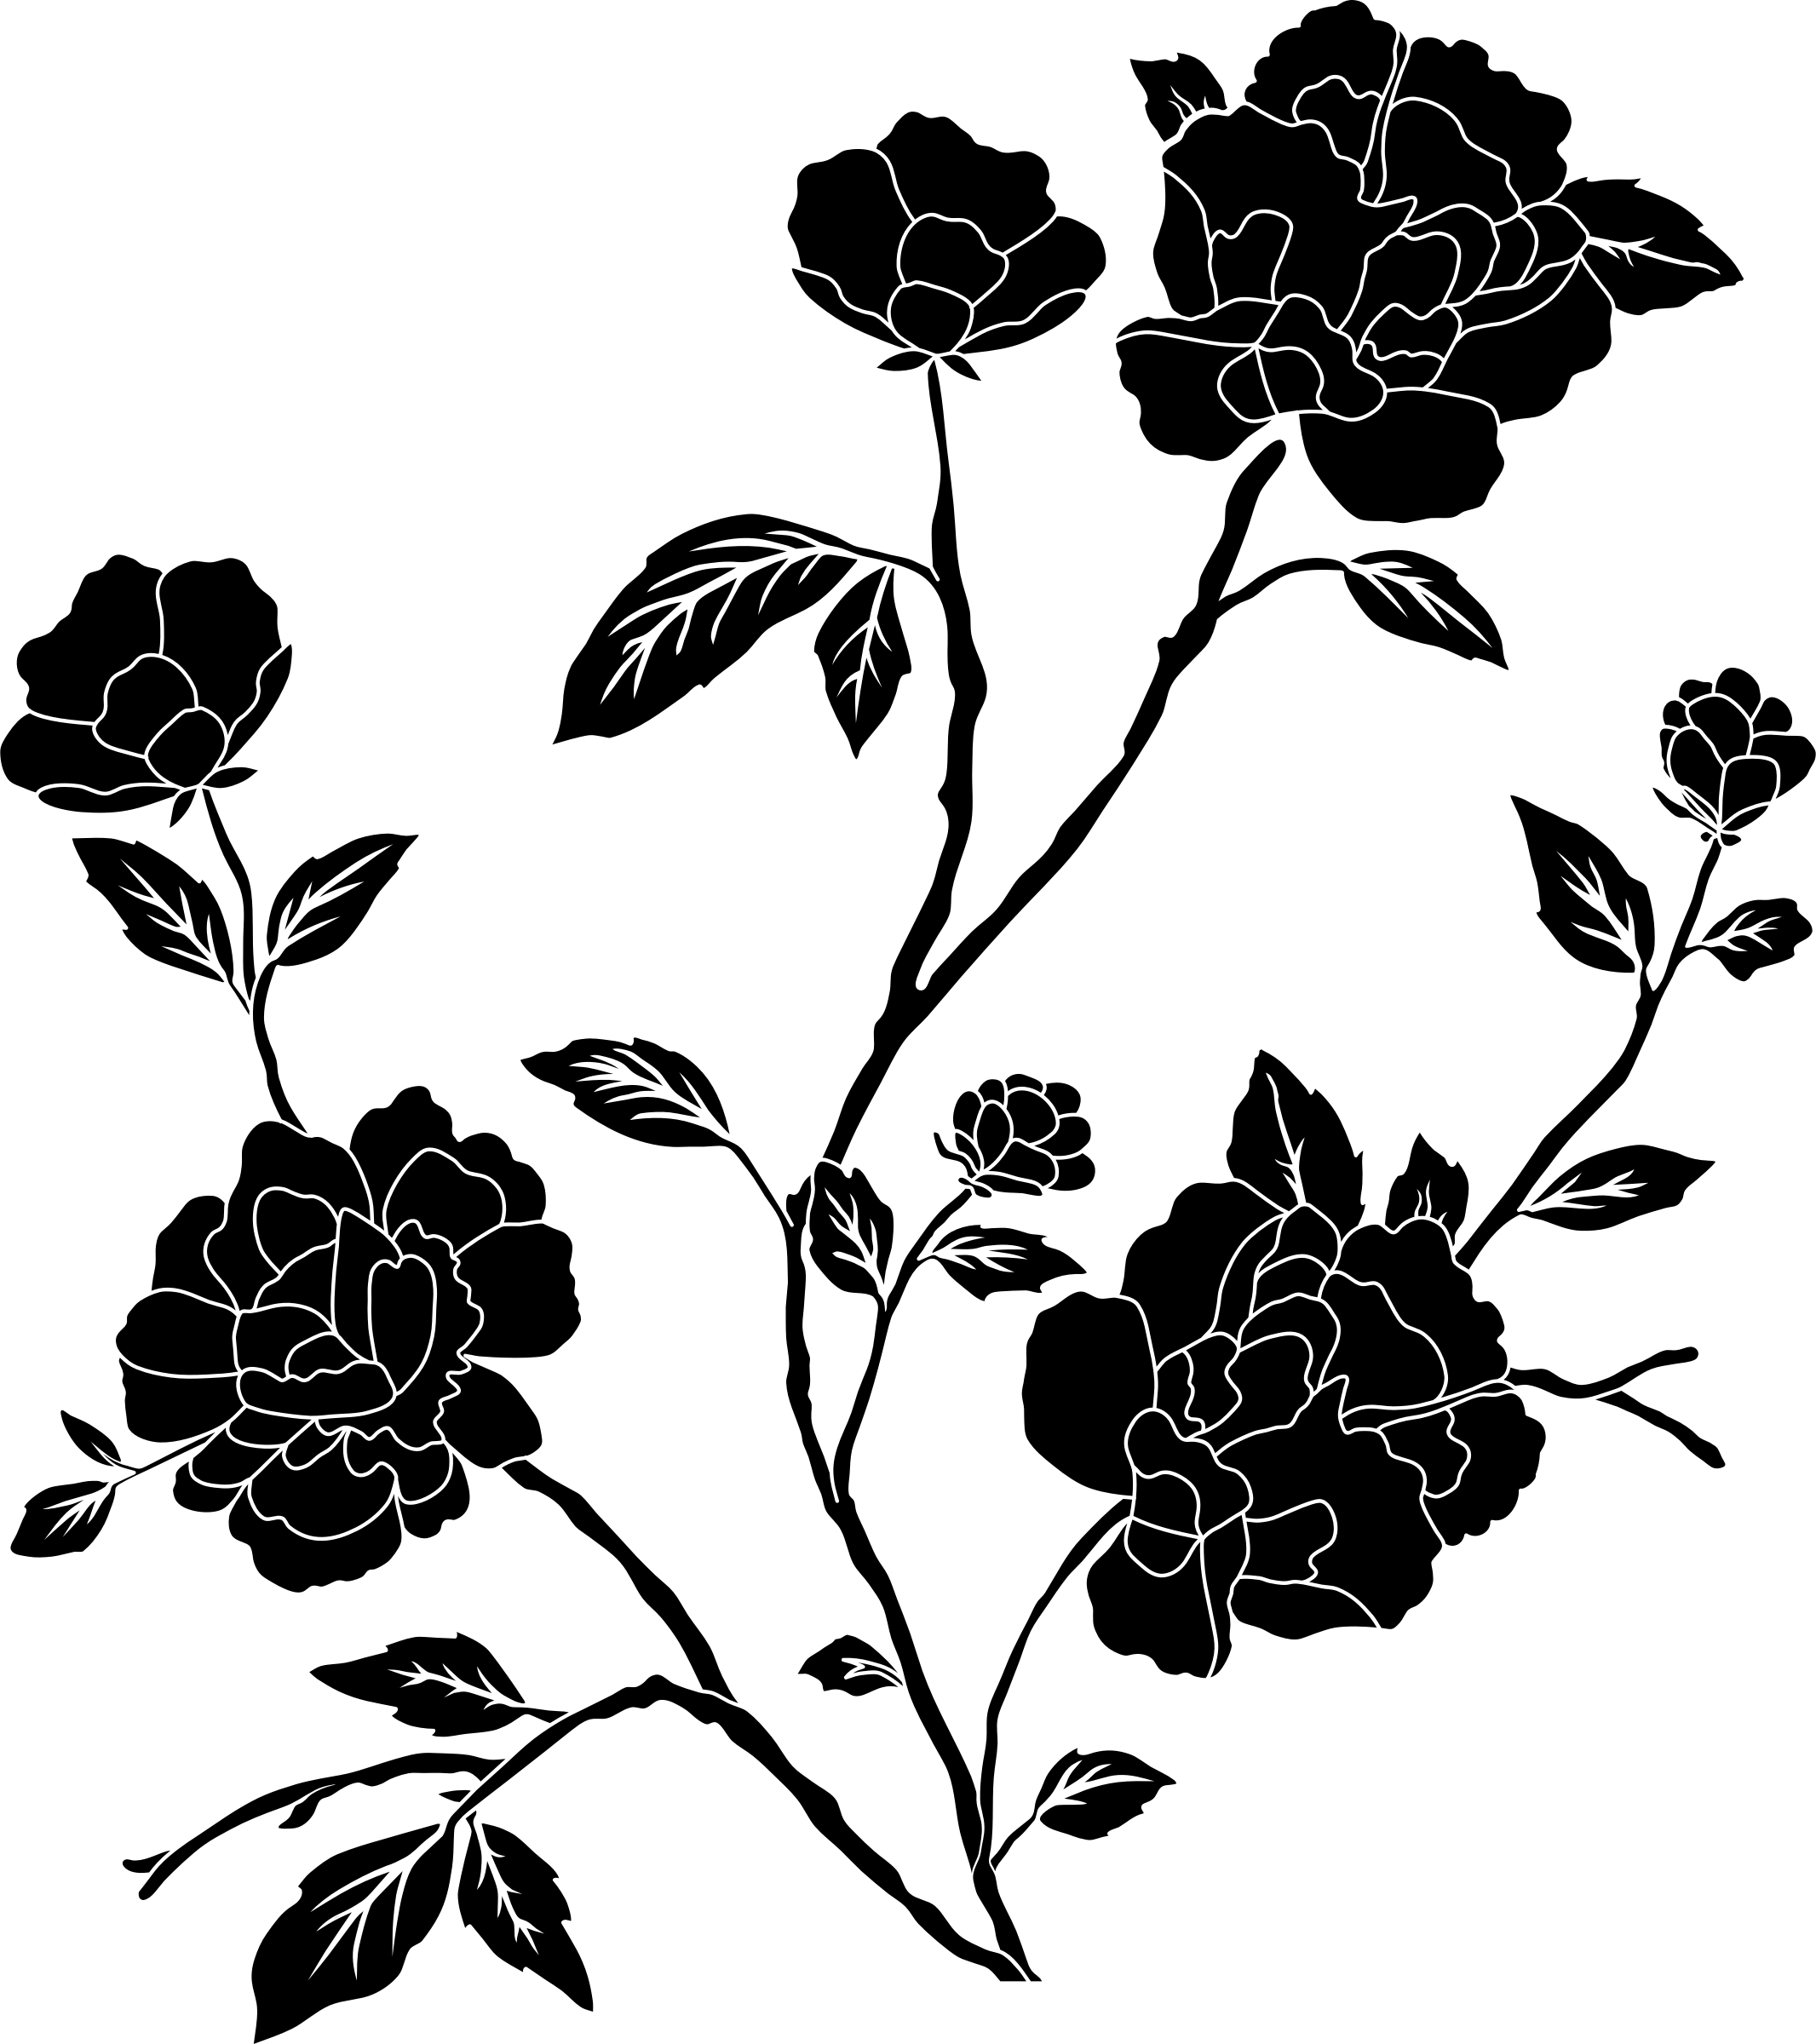 Flower Black And White Transparent PNG Pictures   Free Icons and PNG     Vintage Flowers Rose 2 image  41798